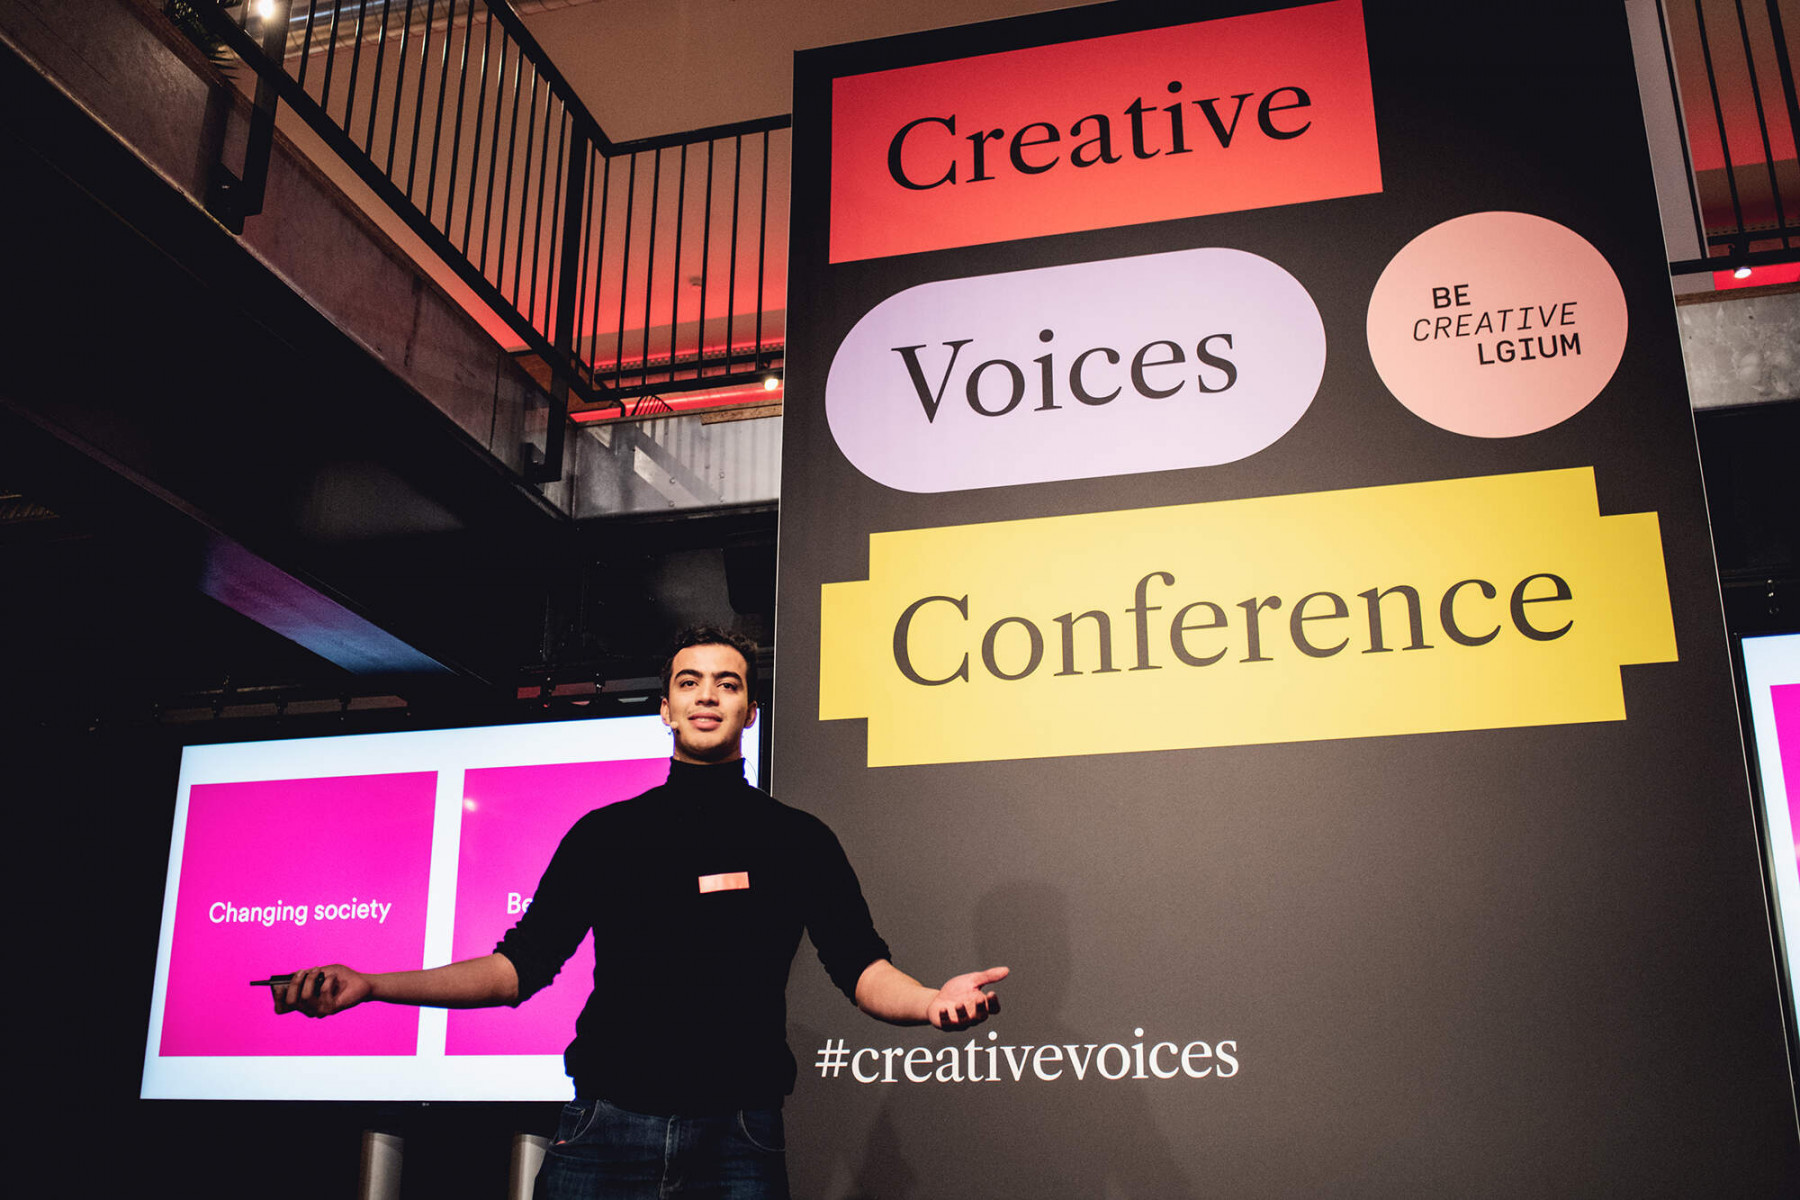 Taha Riani, Creatives Voices Conference